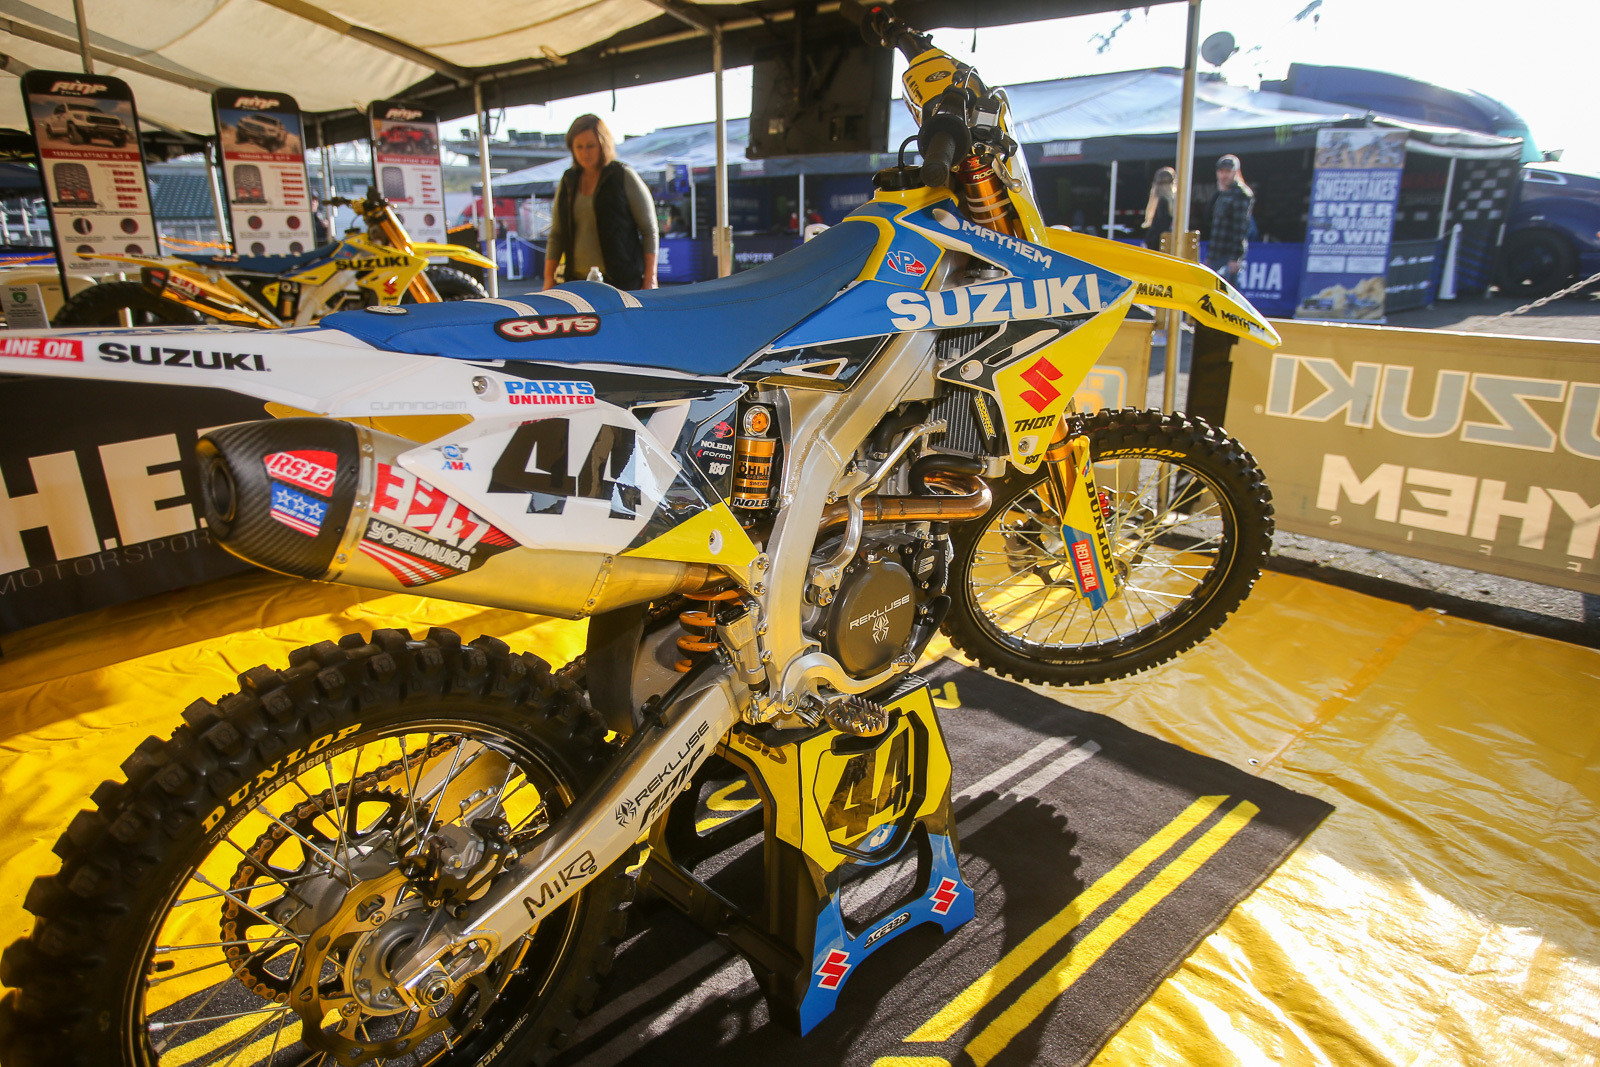 This race is home turf for the H.E.P. Suzuki team.